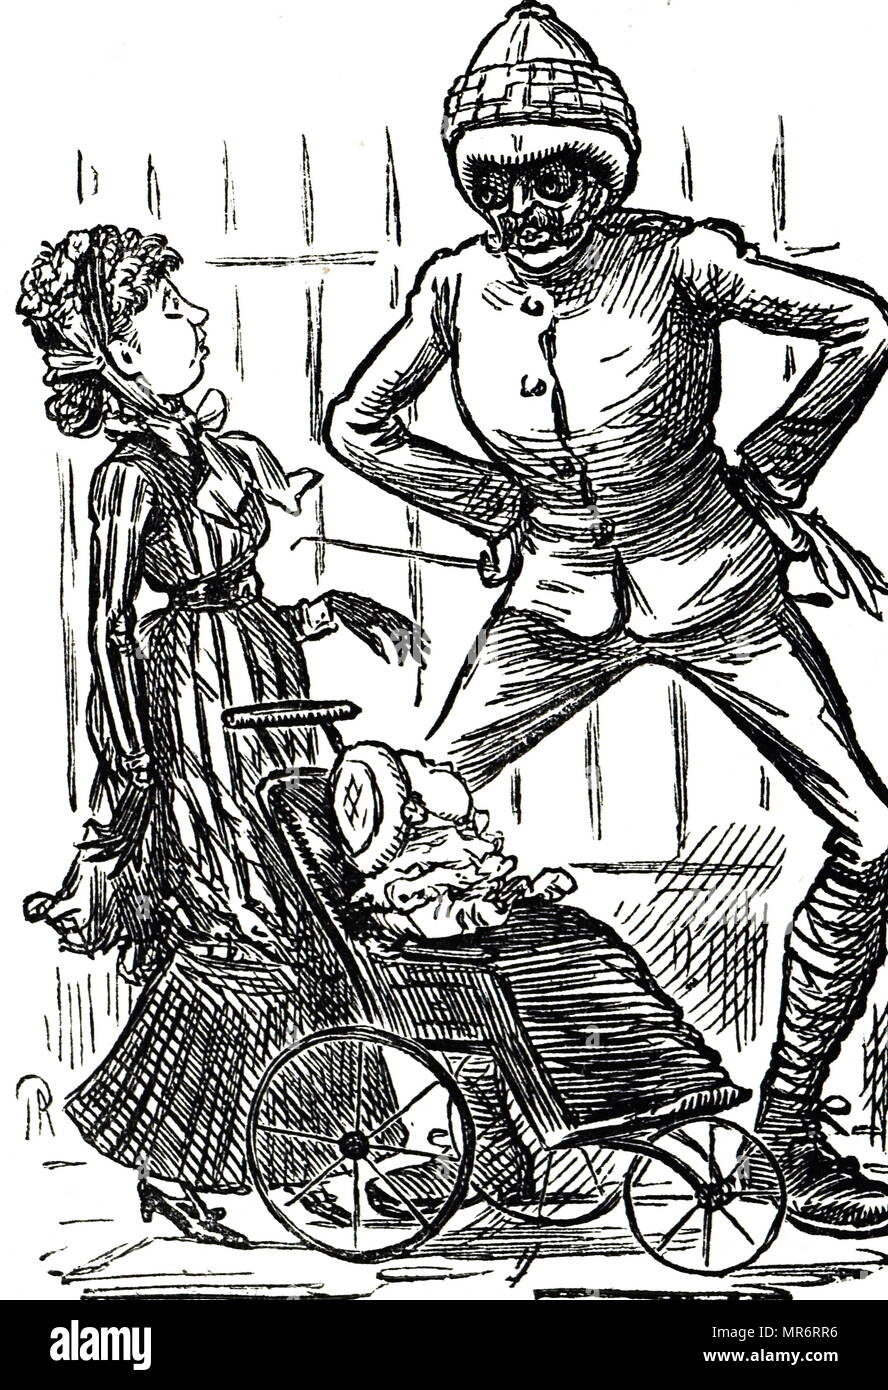 Cartoon commenting on the grotesque effect of a pitch helmet, sun goggles and puttees. Dated 19th century - Stock Image